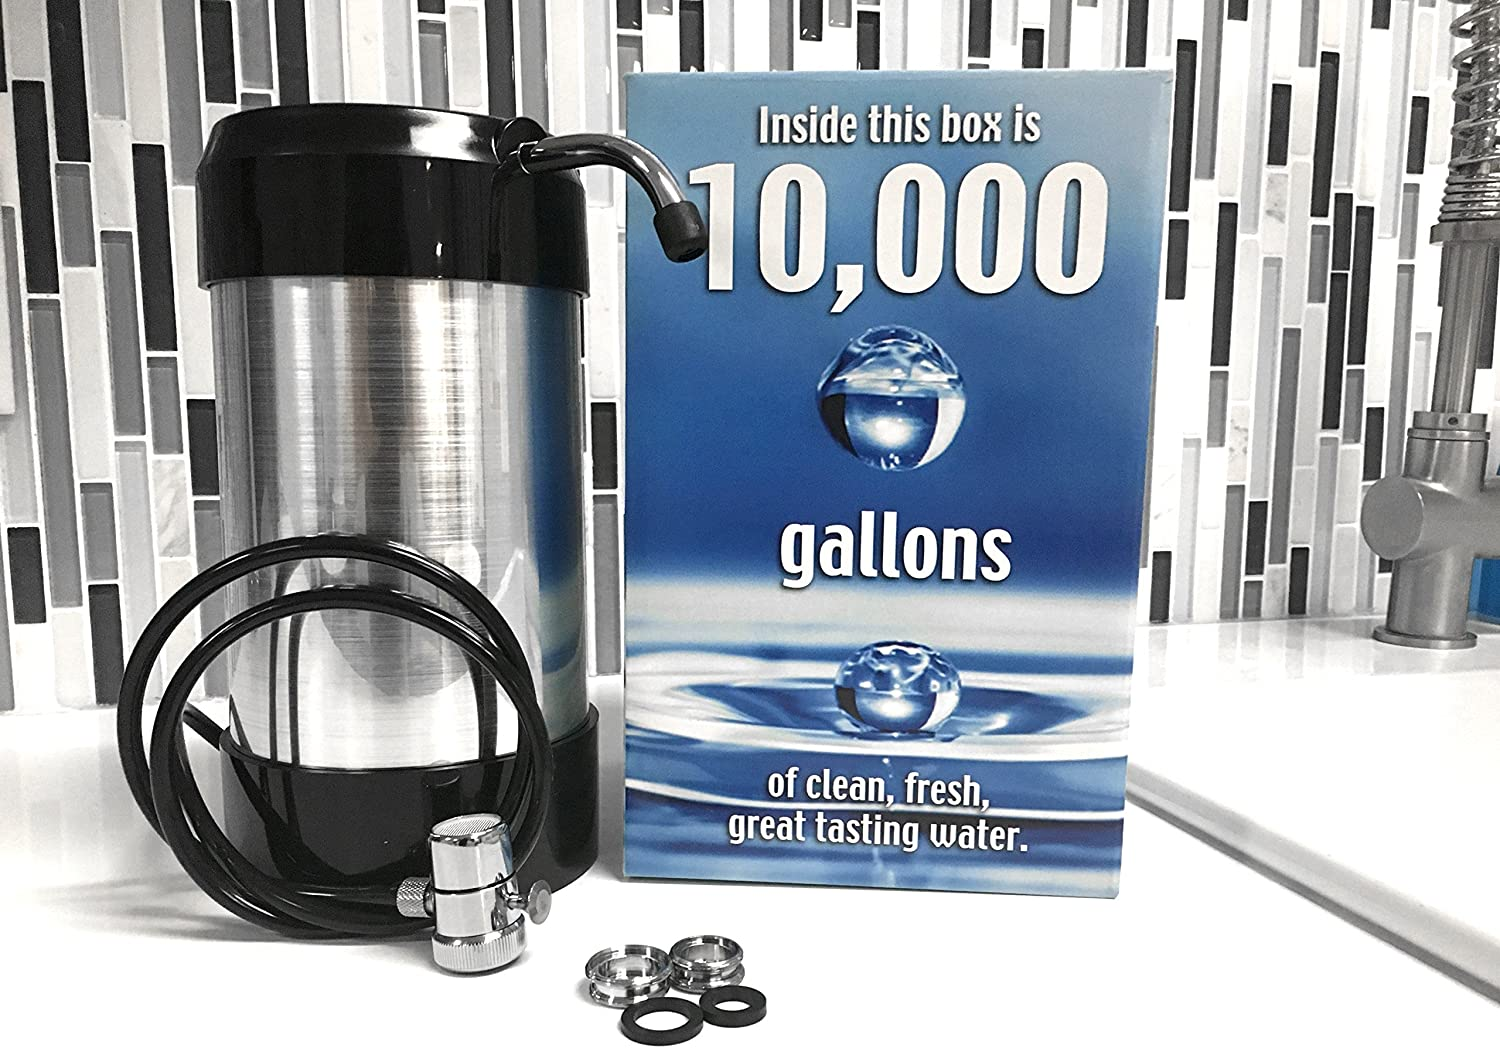 CleanWater4Less® Countertop Water Filter 10,000 gallons capacity